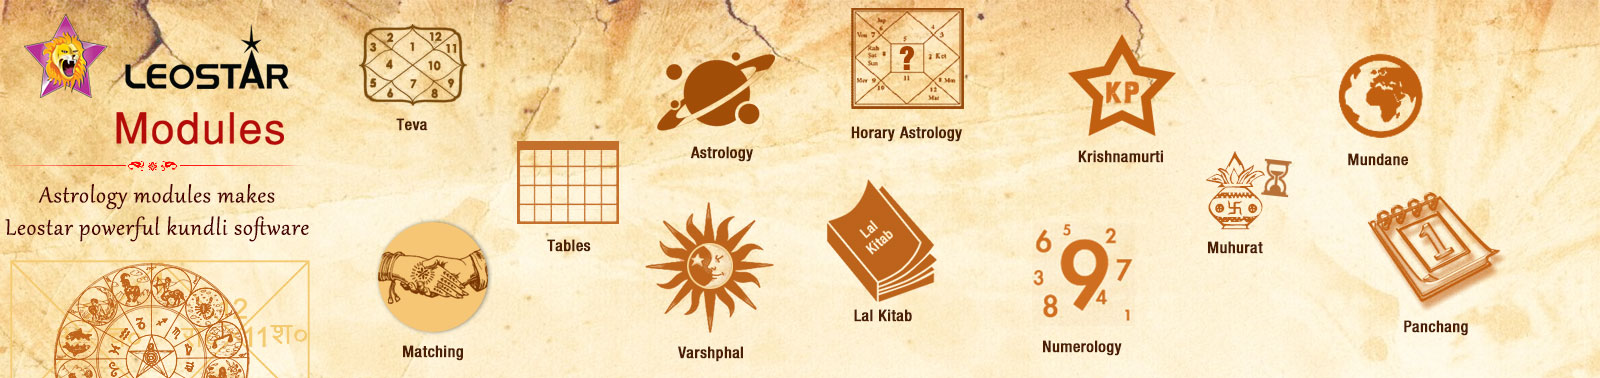 Astrology software modules